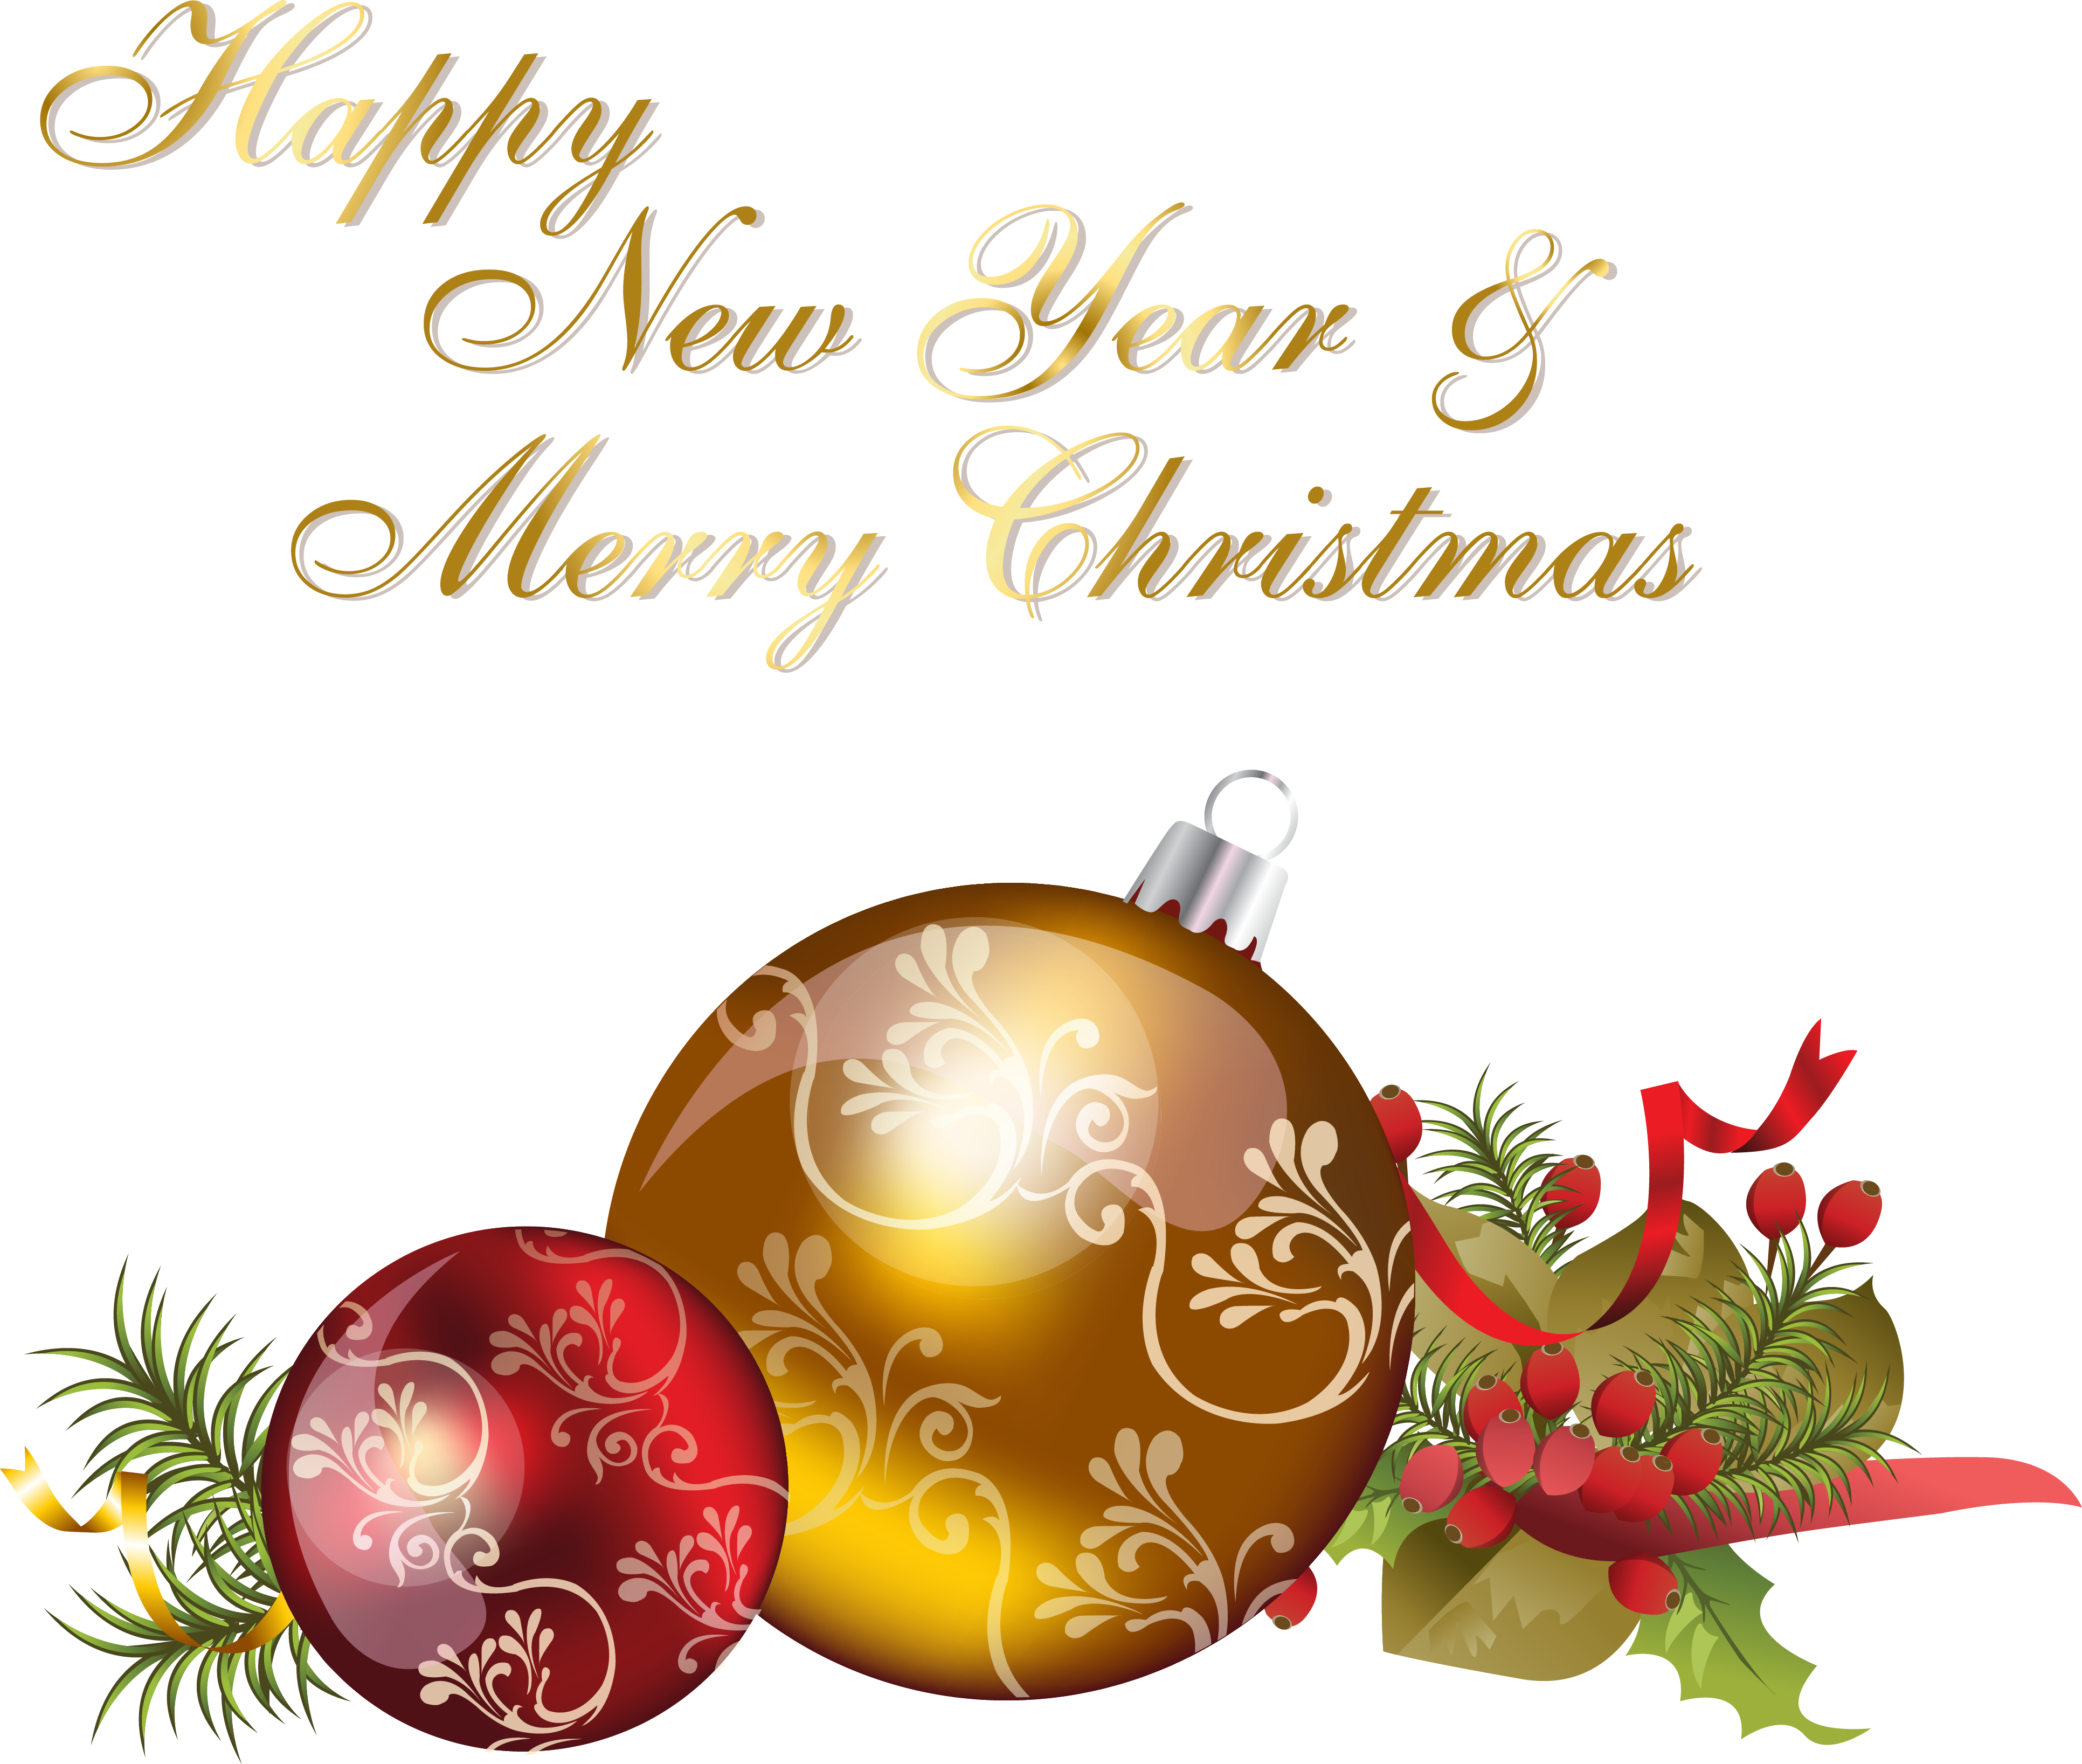 Transparent clipart merry christmas and happy new year - Happy New Year And Merry Christmas - Merry Christmas And Happy New Year 2019 Png